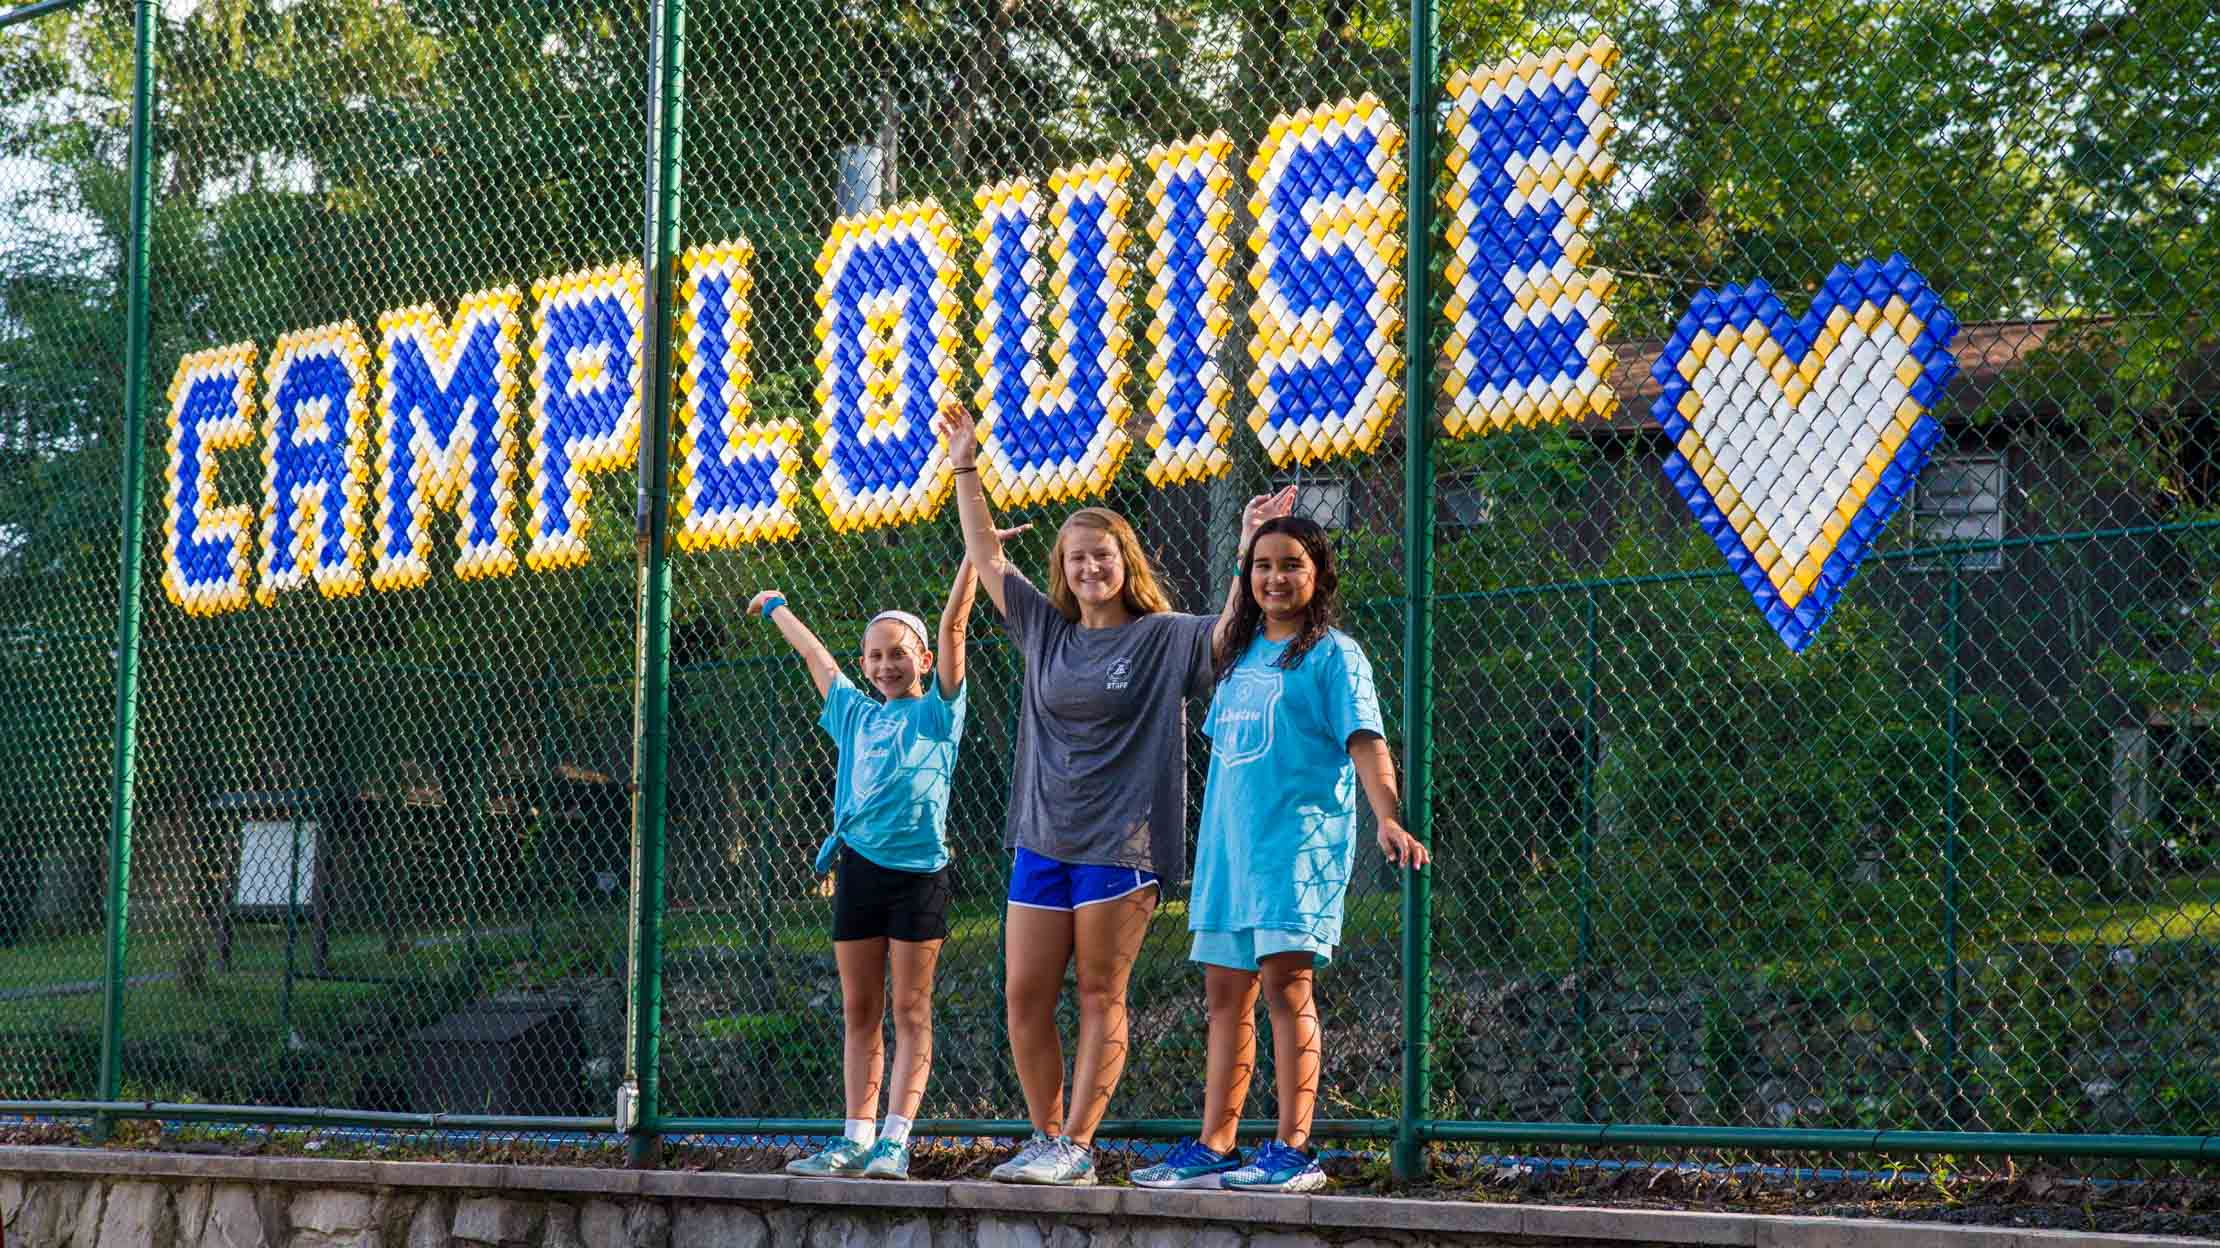 Camp Louise spelled out by tennis court